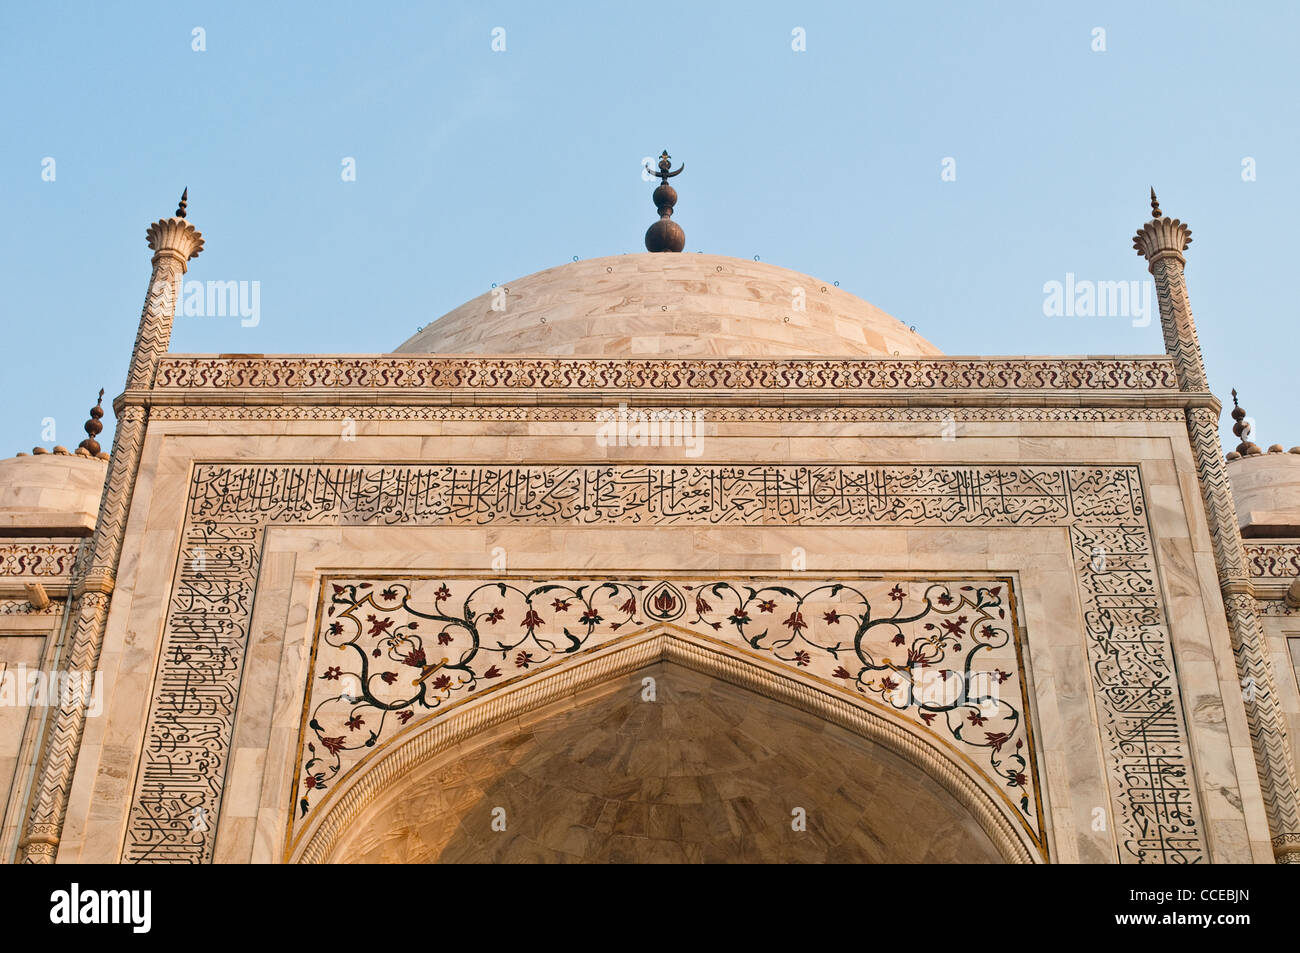 Spandrel detail with floral pattern of precious stones, Taj Mahal, Agra, India - Stock Image